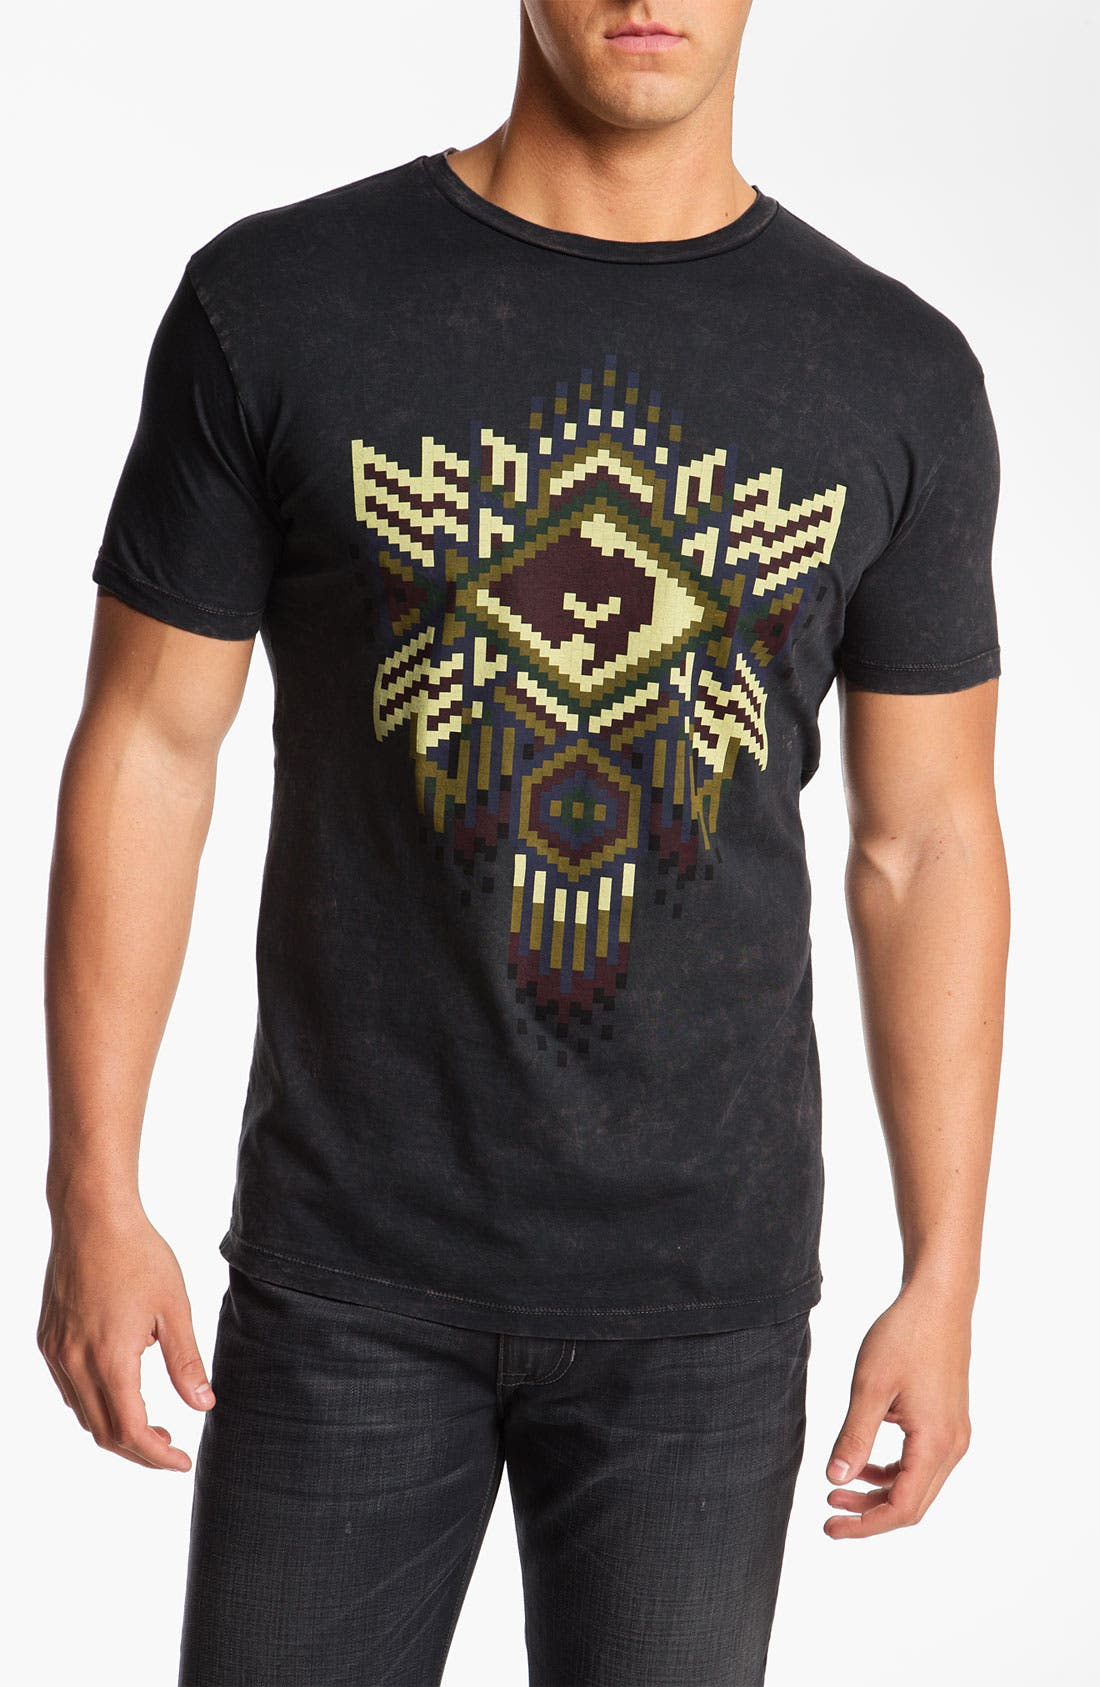 Main Image - Obey Pixel Graphic T-Shirt